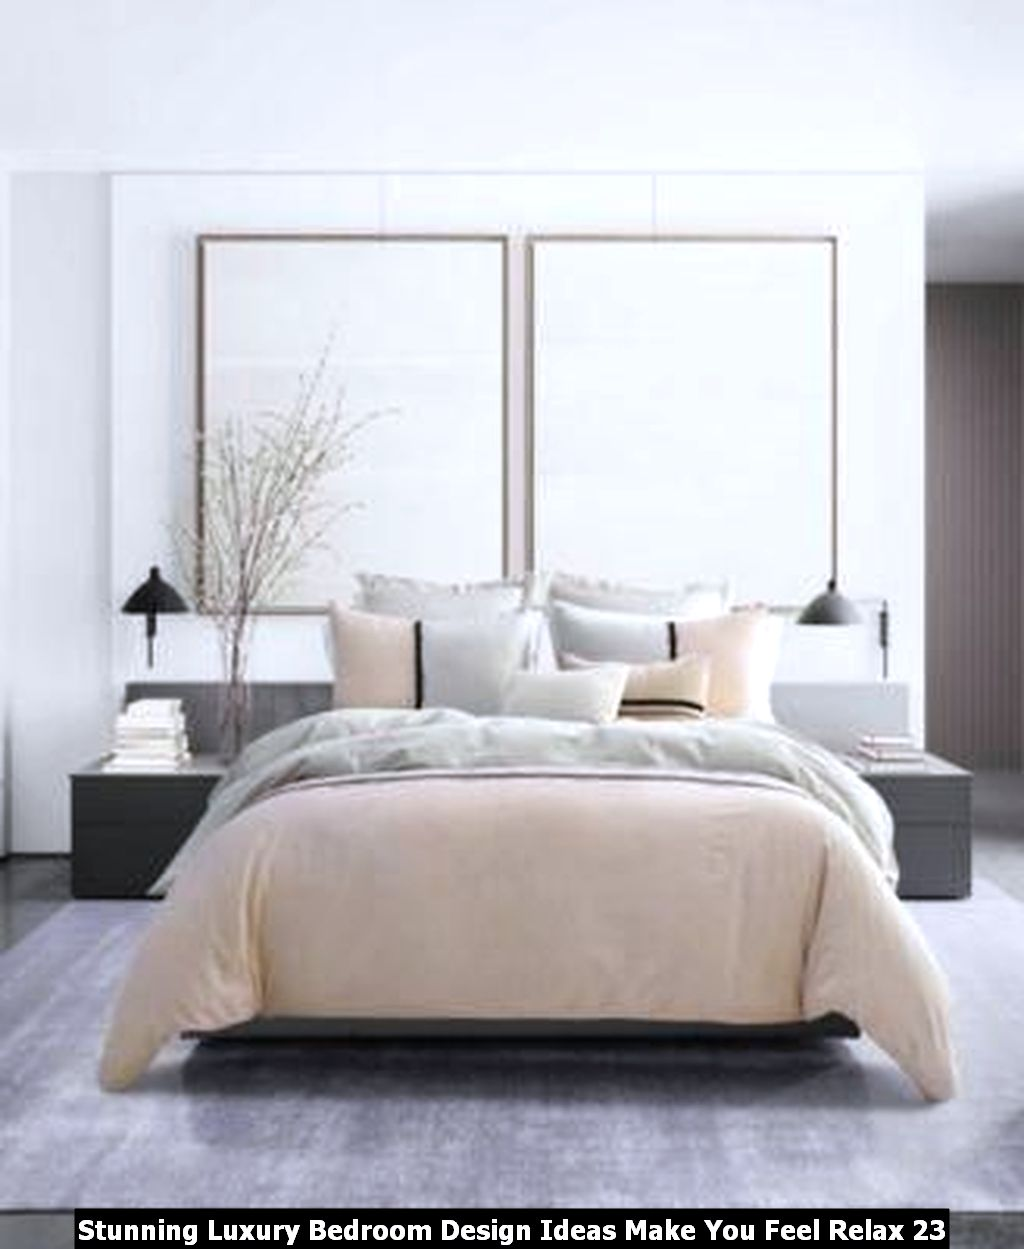 Stunning Luxury Bedroom Design Ideas Make You Feel Relax 23